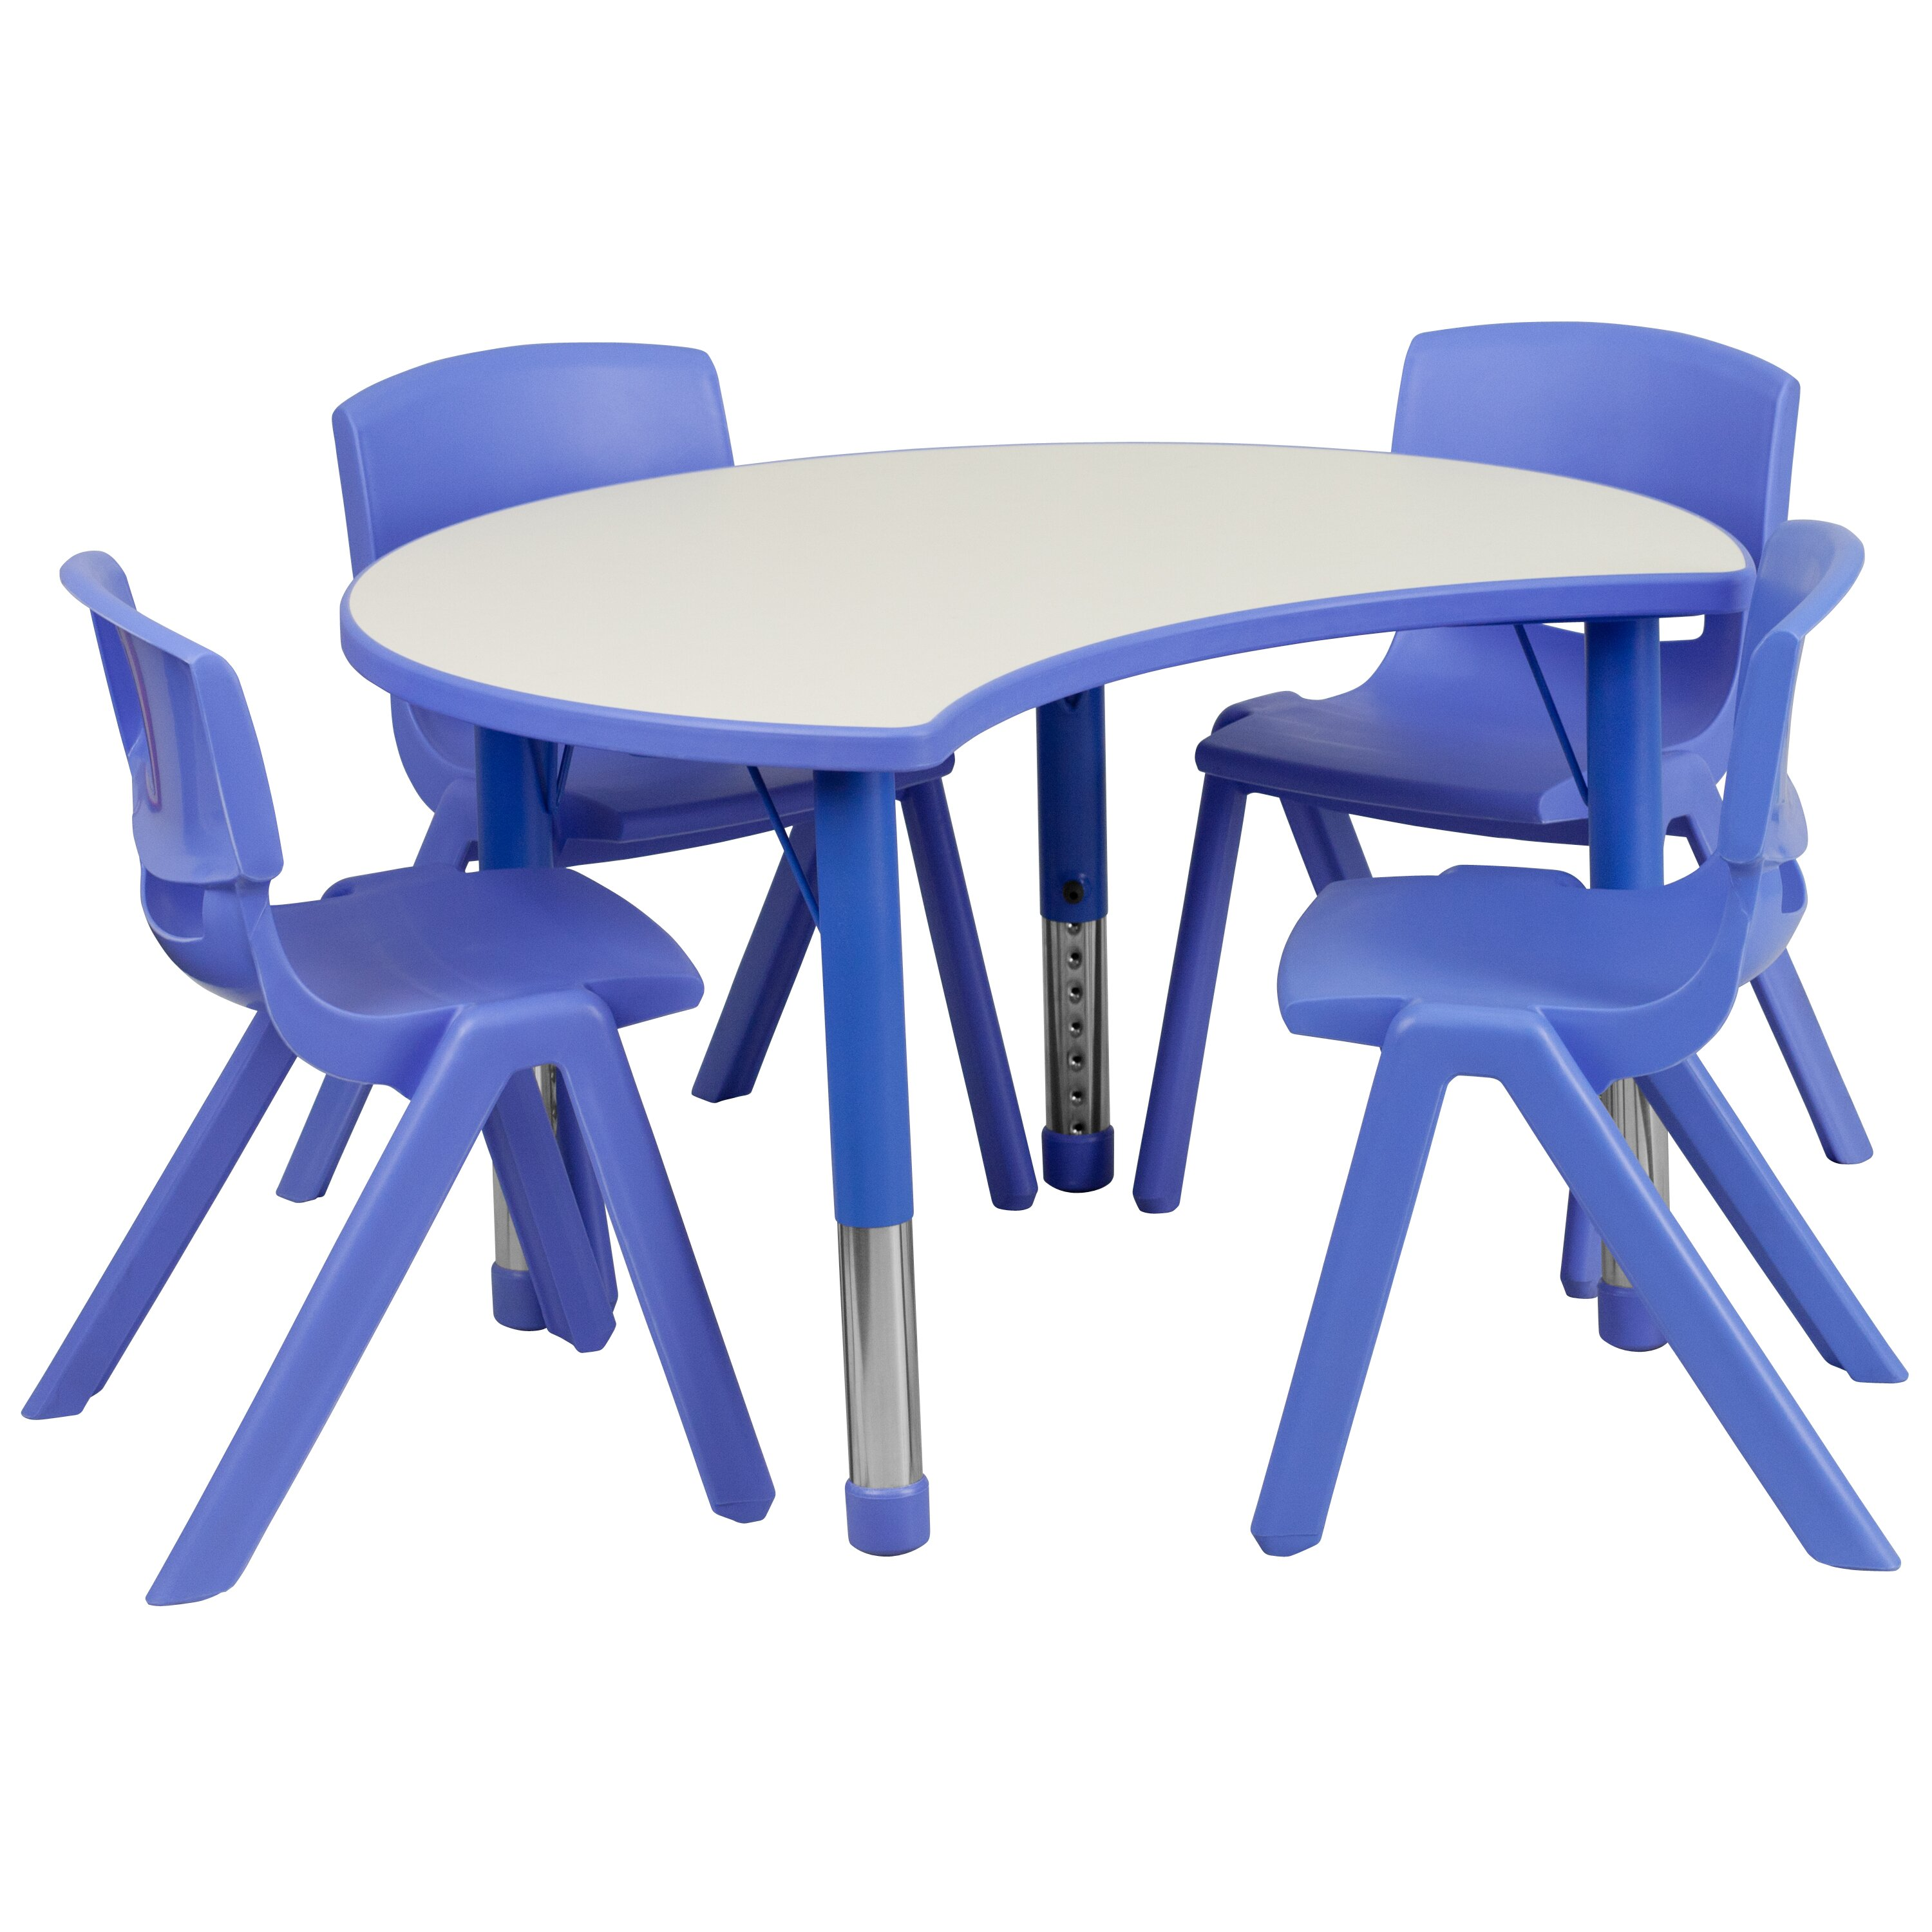 Flash furniture 5 piece kidney activity table reviews for School furniture 4 less reviews